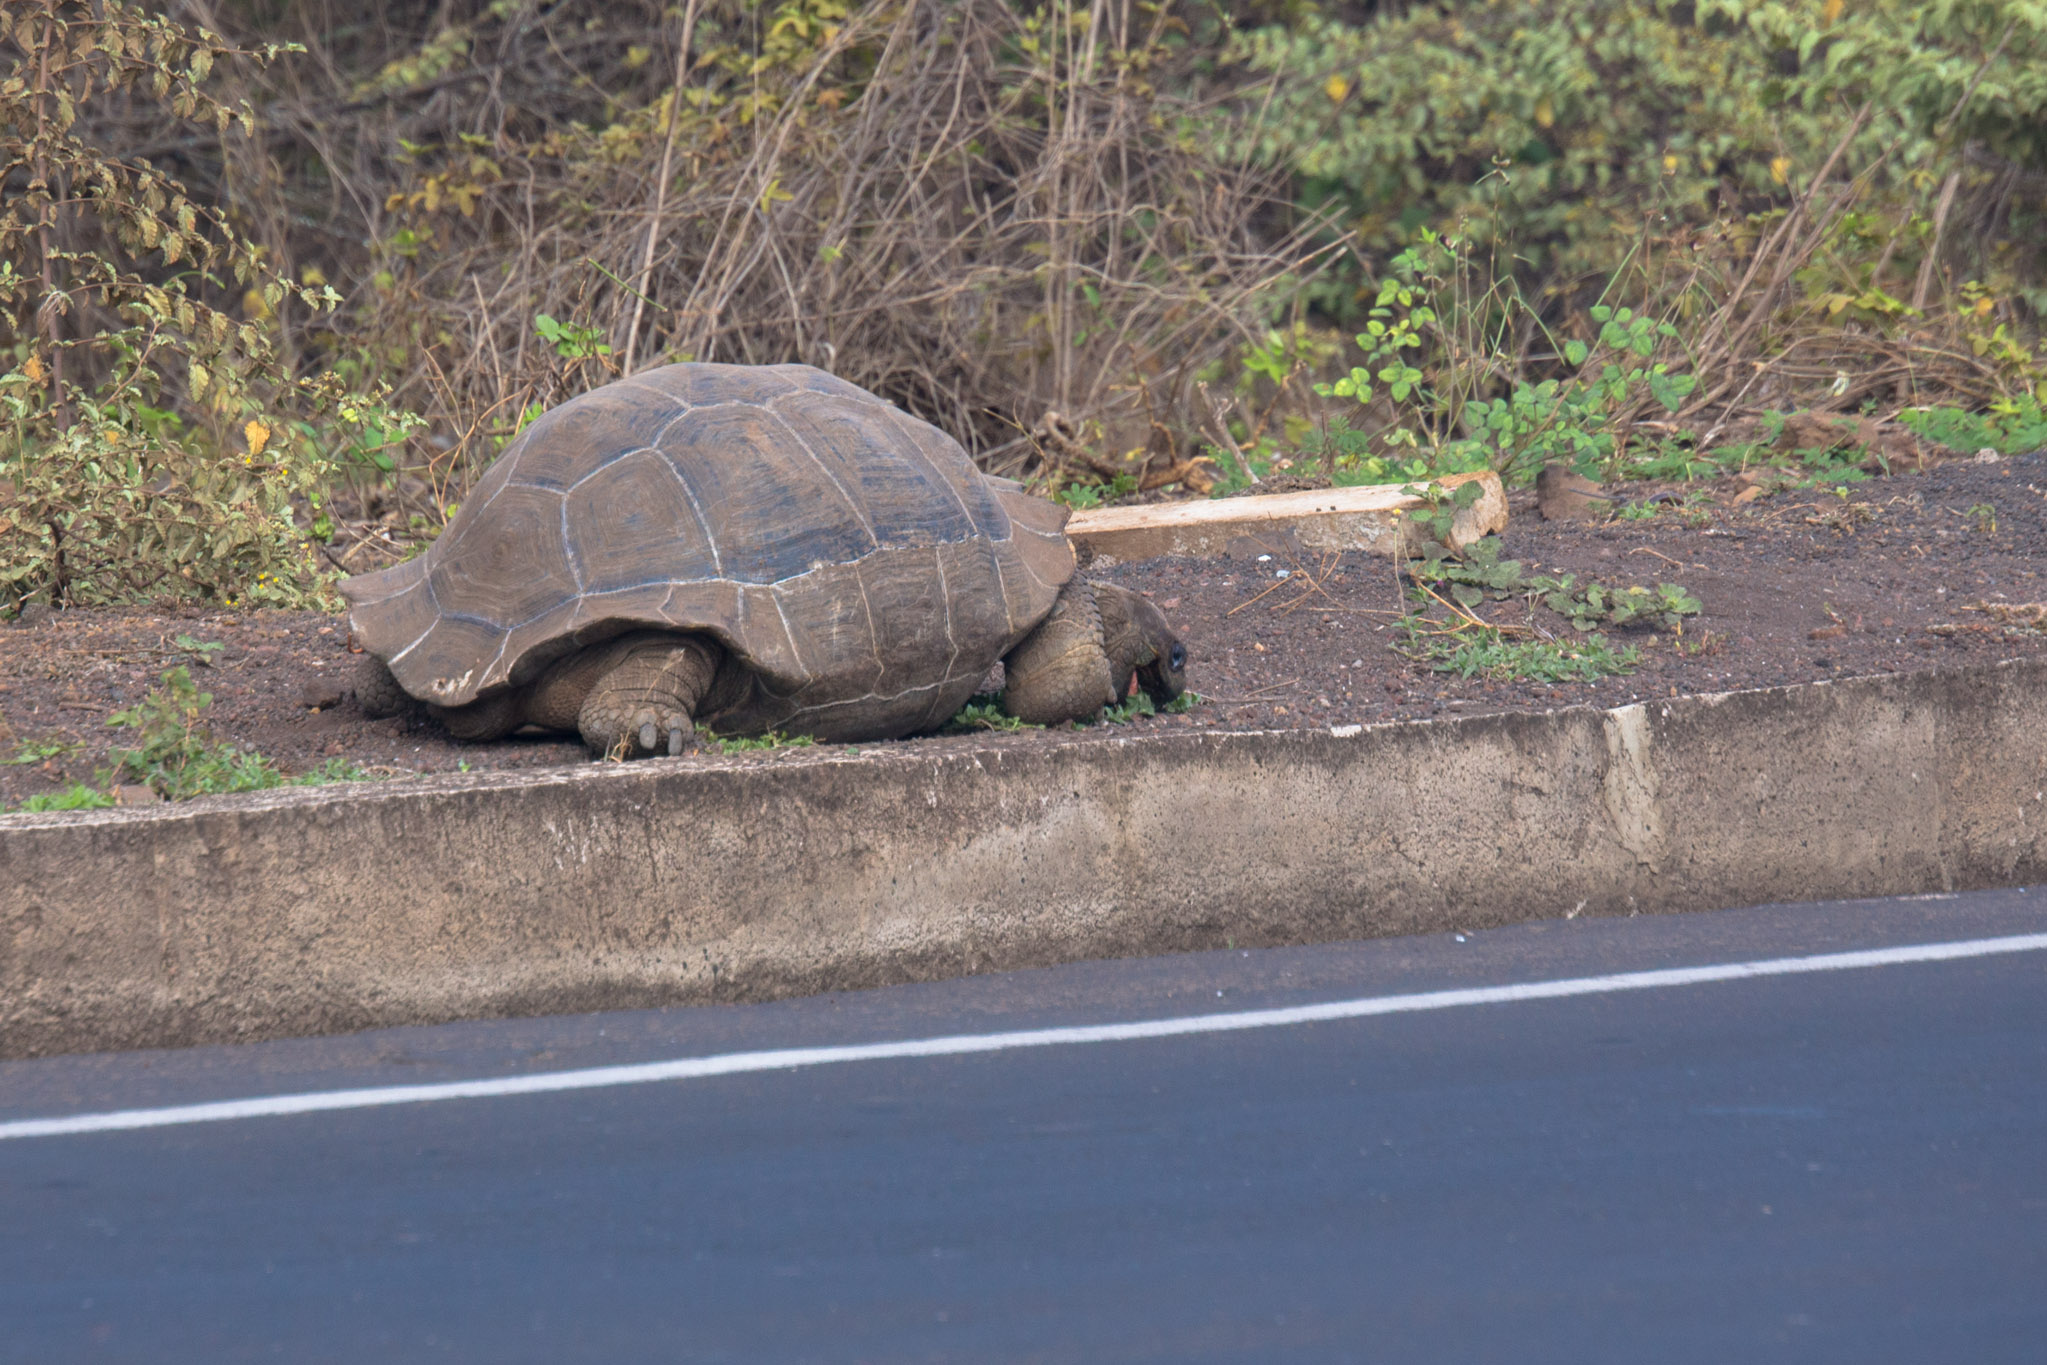 Giant Tortoise eating breakfast at the bus terminal on the way to board the Santa Cruz. A normal day in Galapagos.